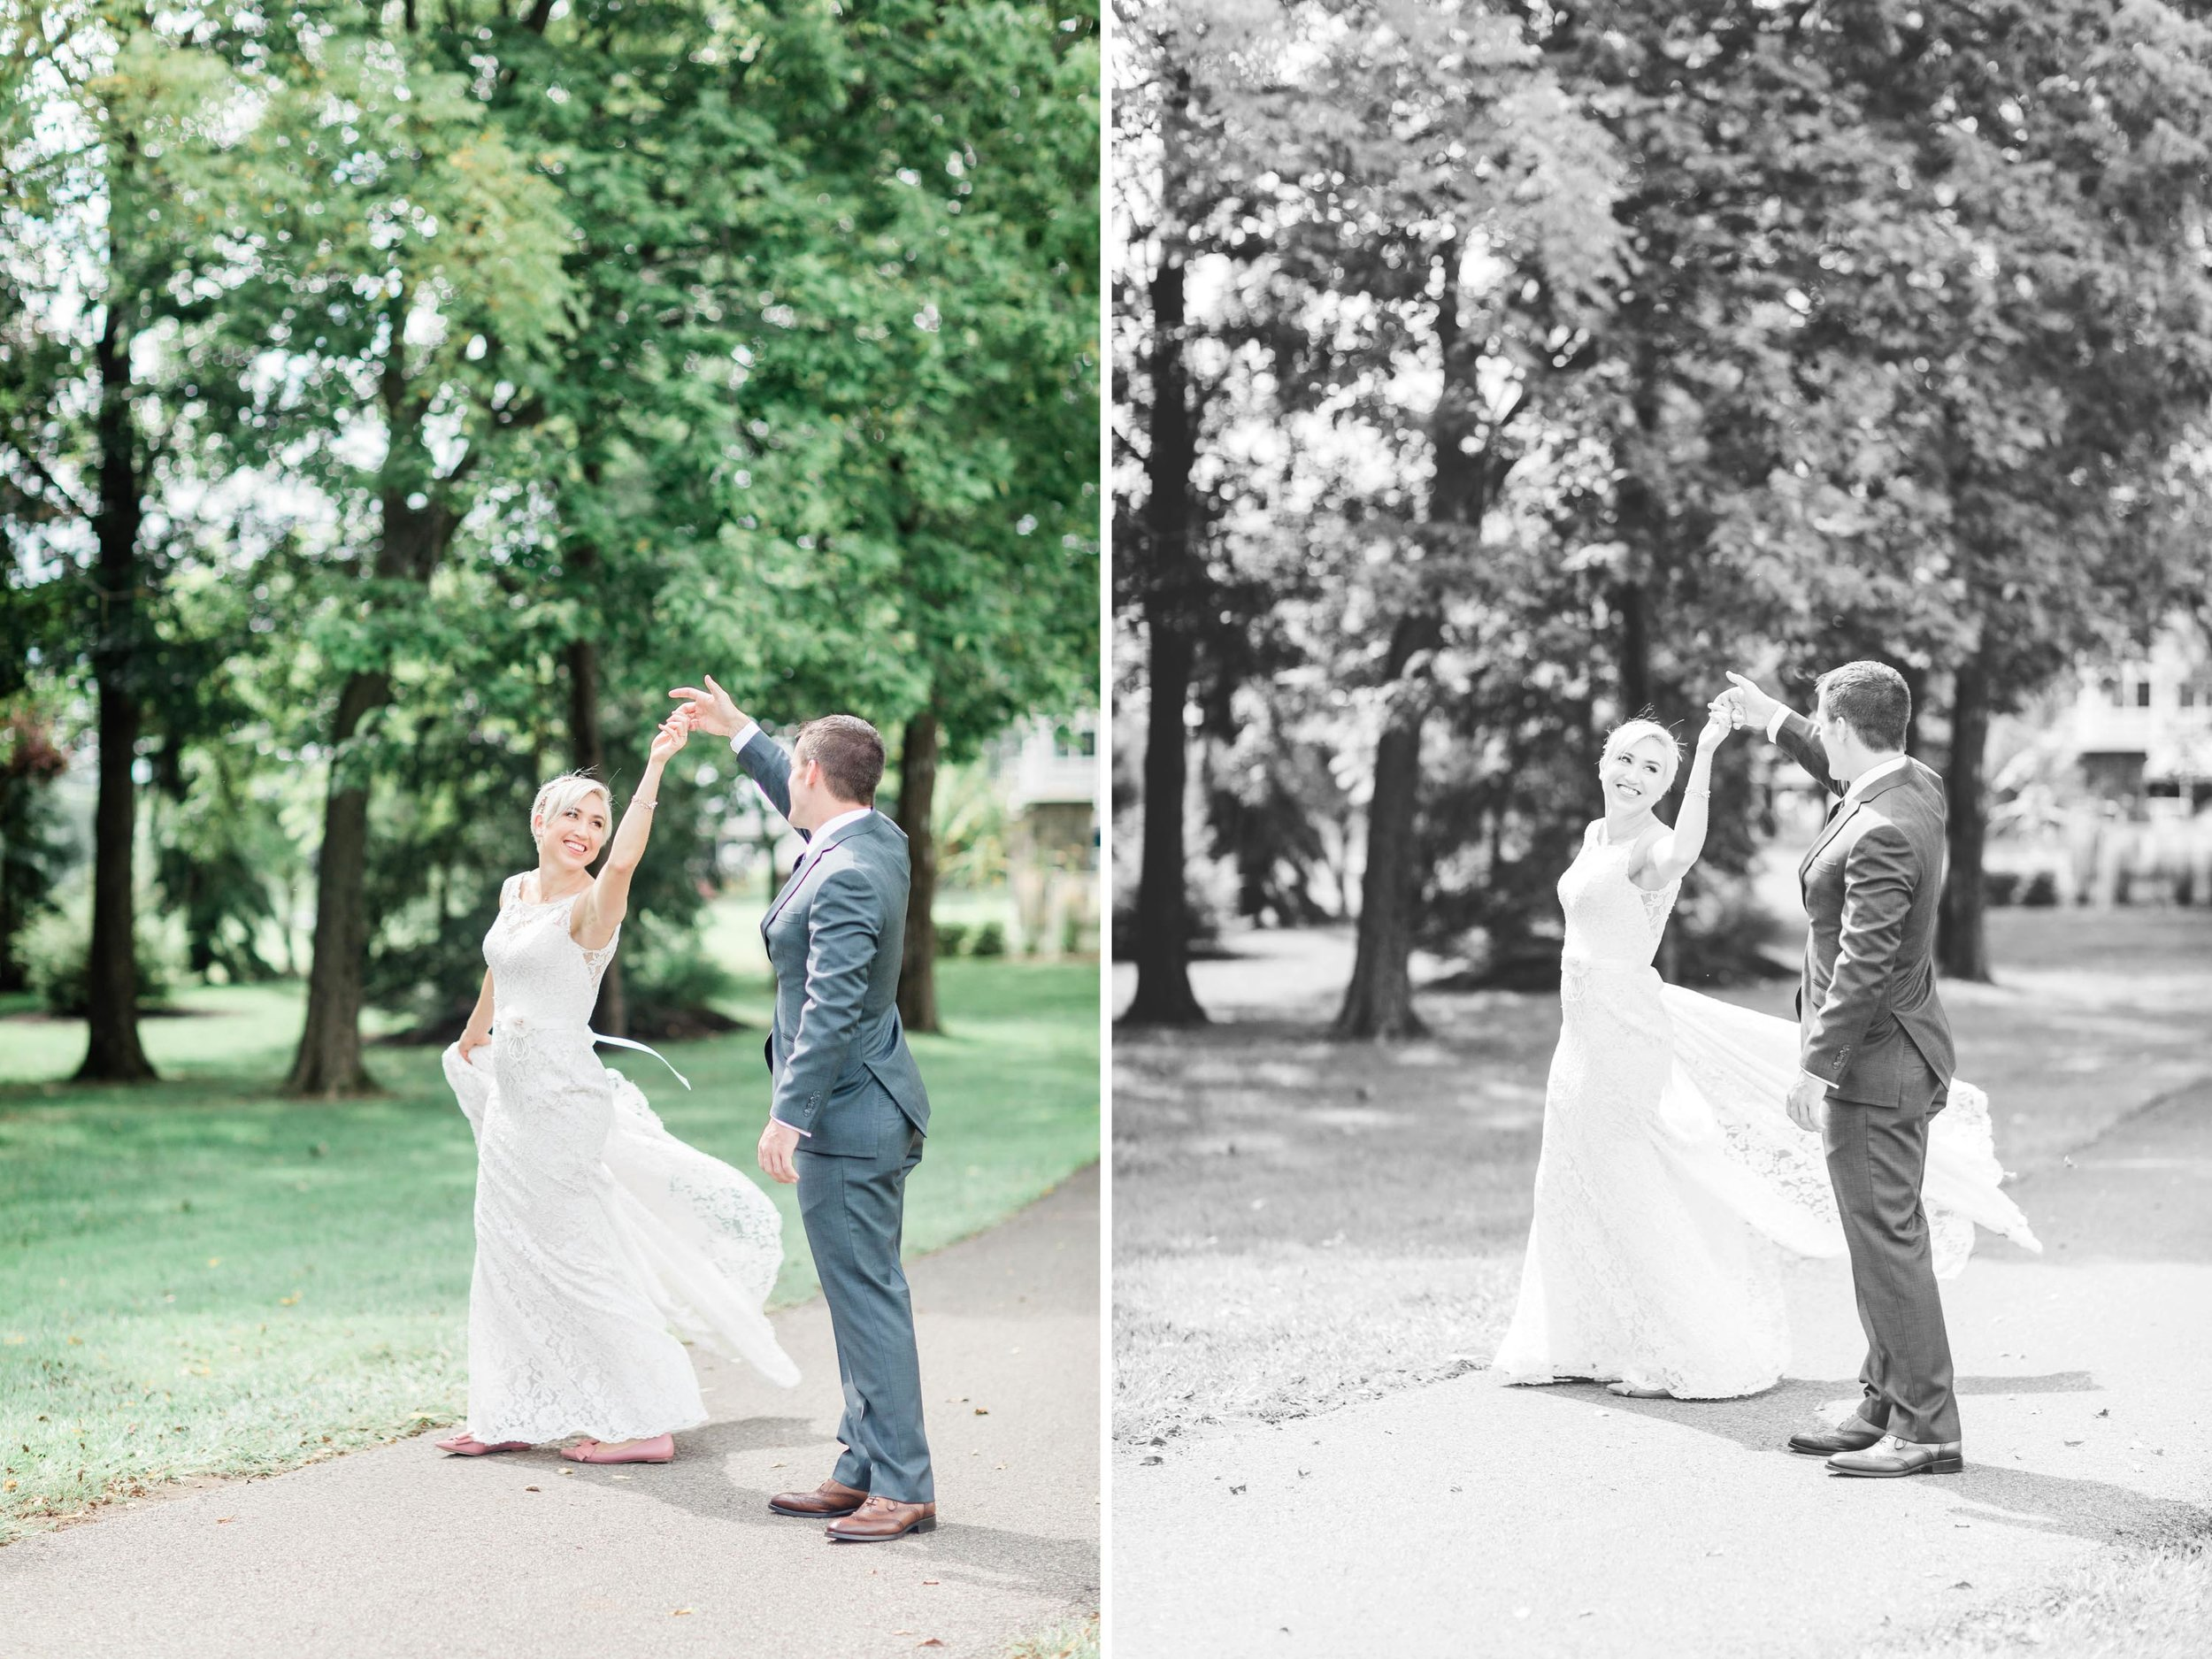 twirl bride and groom picture.jpg